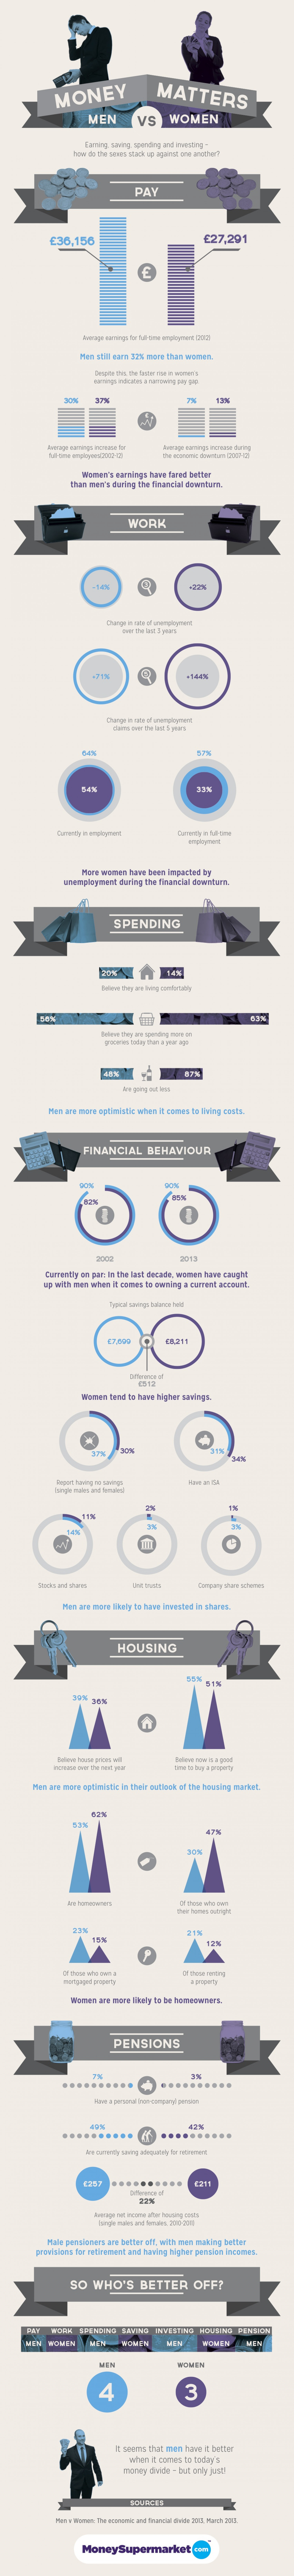 Men vs. Women Money Management Infographic